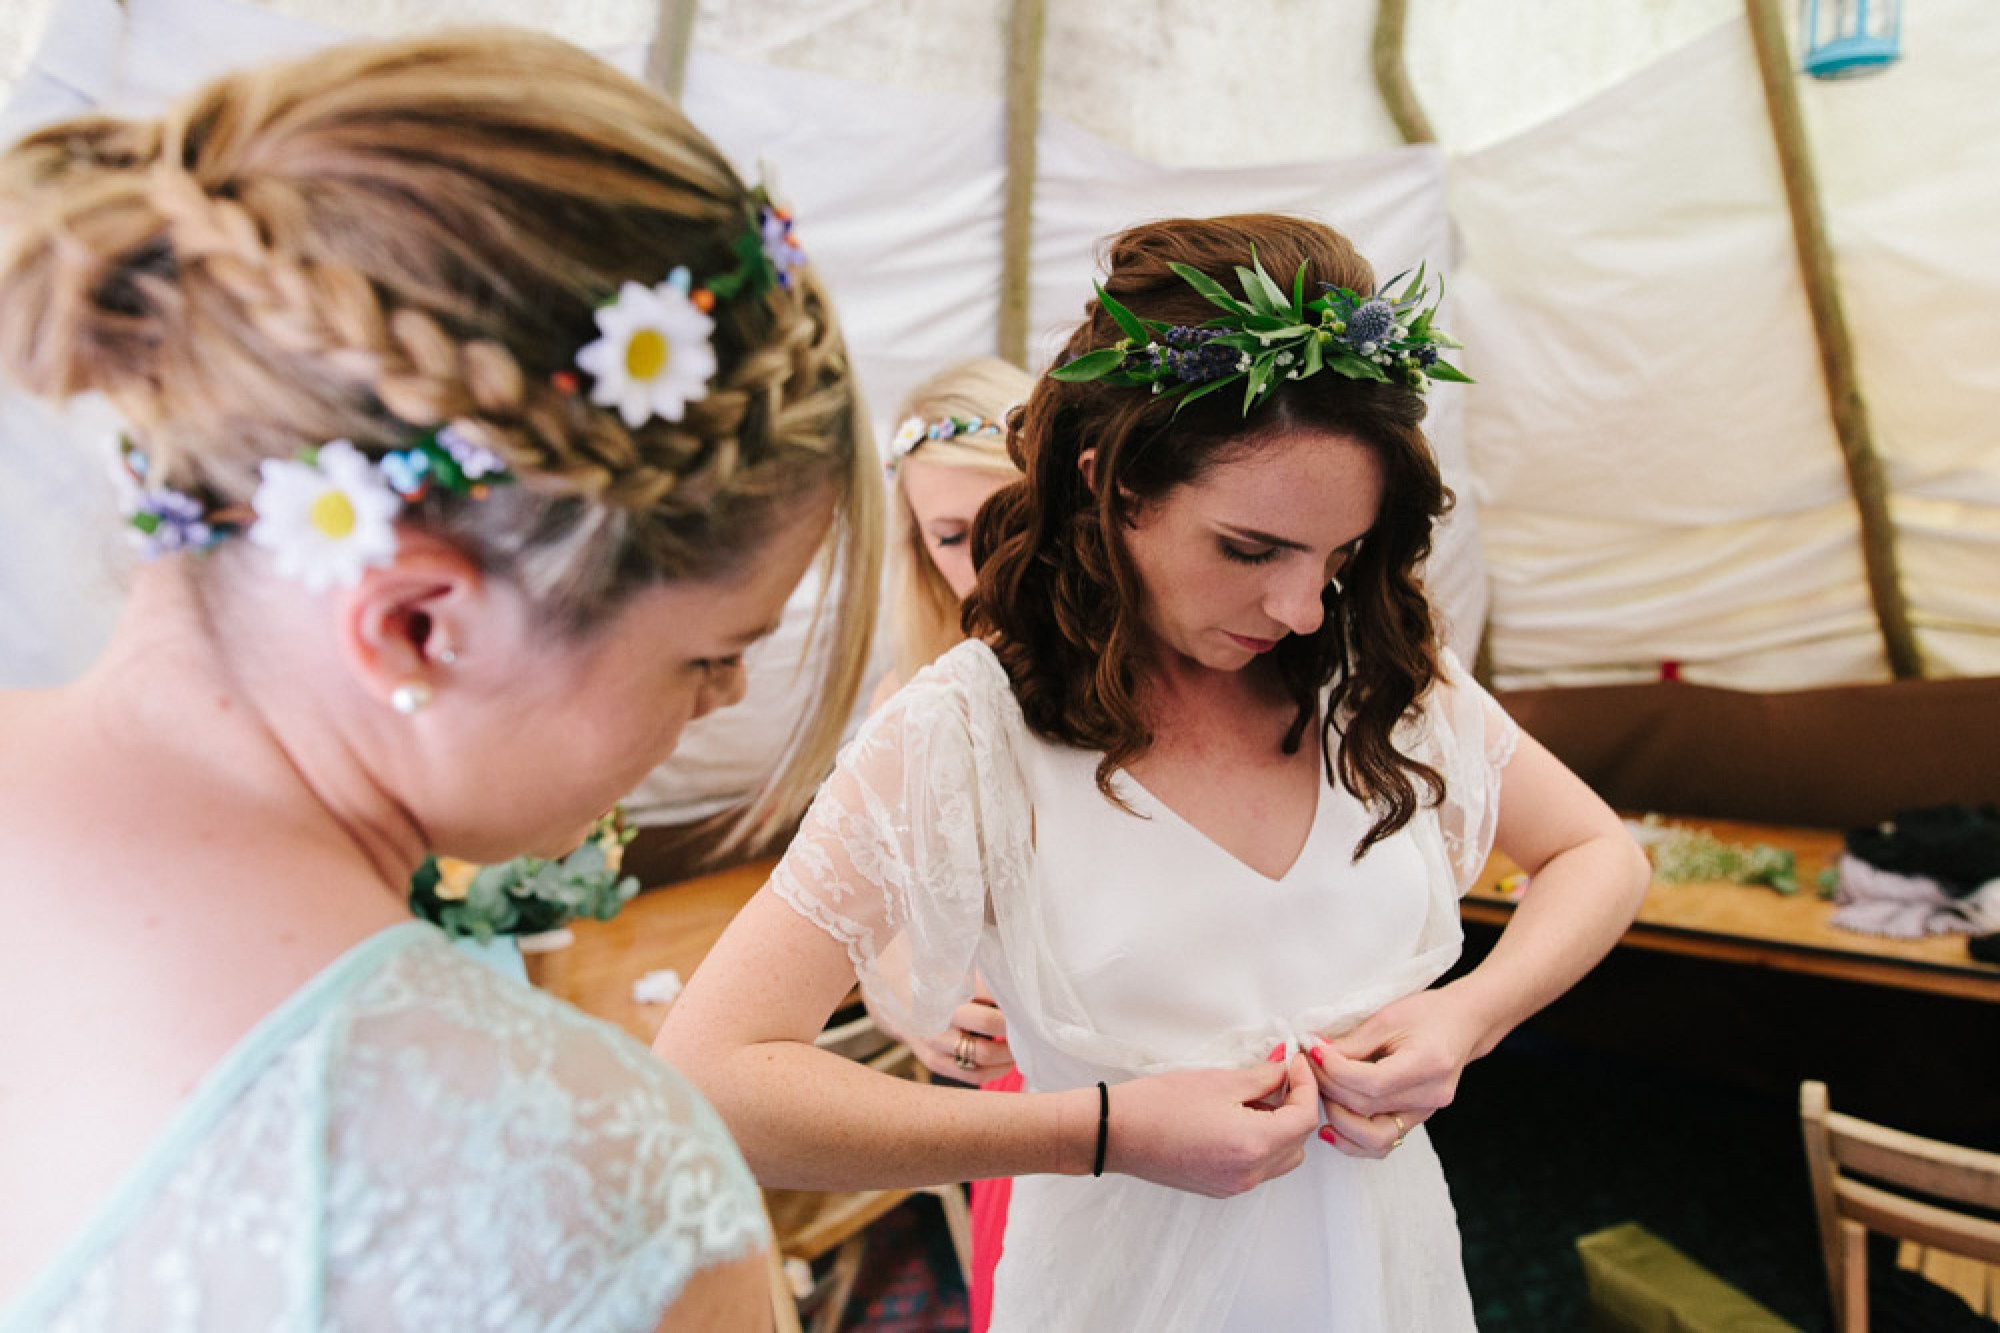 Getting ready for a festival wedding in the UK